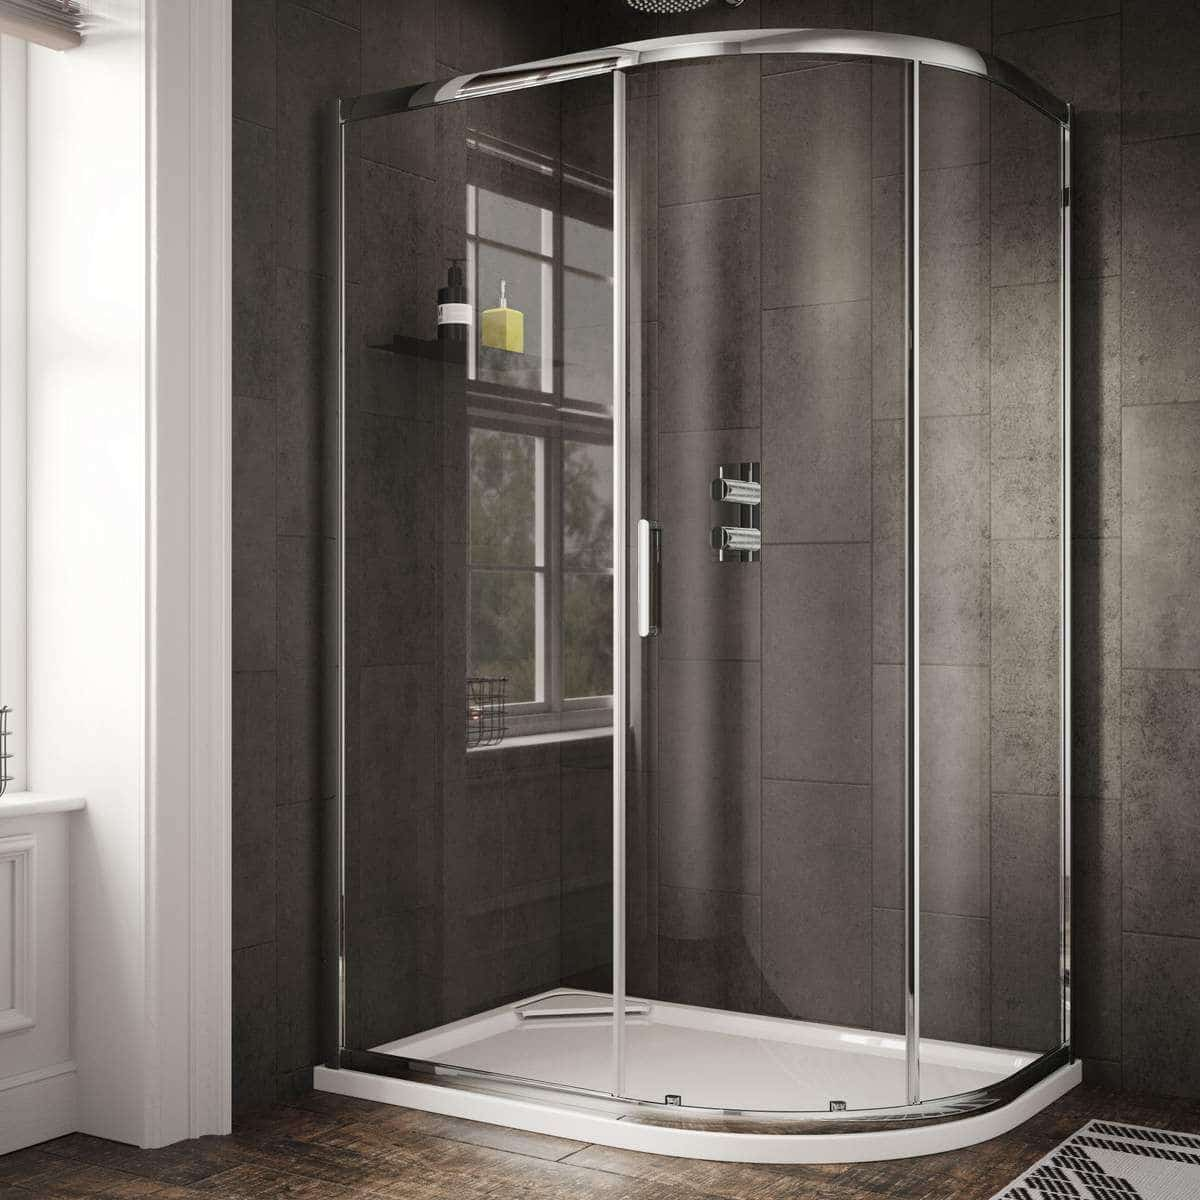 SOS65+SOS47 Sommer 6 Offset Single Door Quadrant Shower Enclosure Chrome